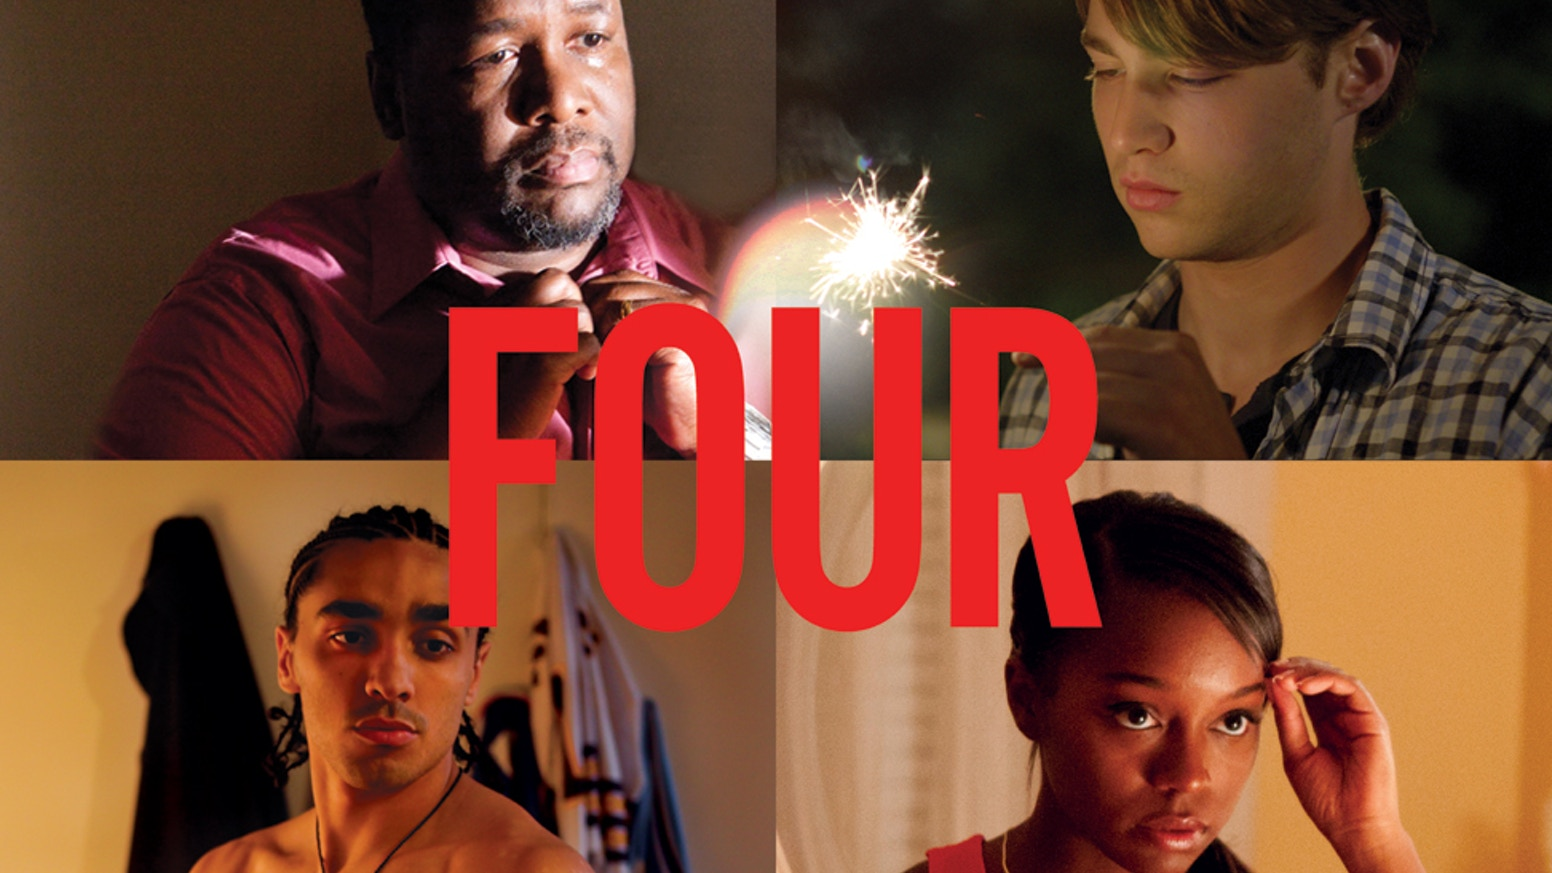 Four juxtaposes the relationships of two couples struggling with their demons and desires on the American night of independence.